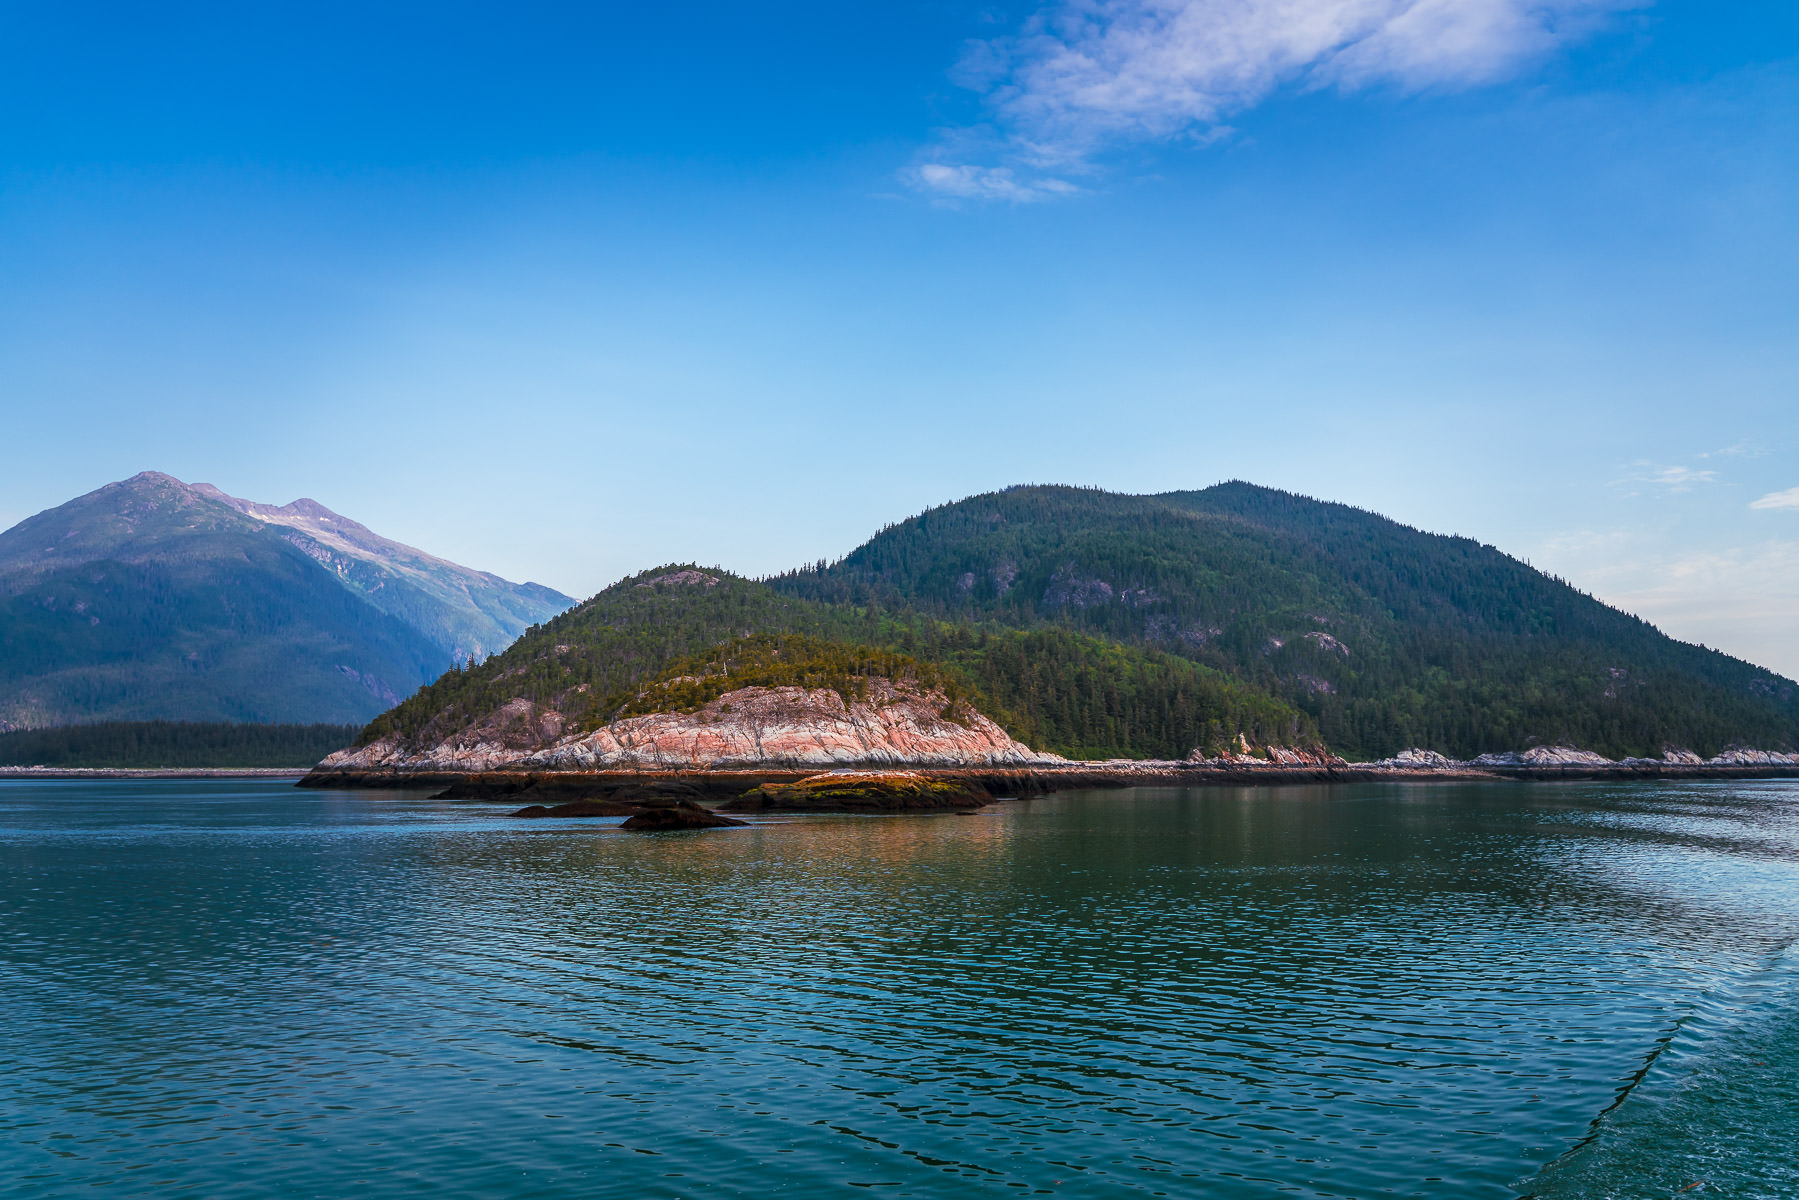 The mountainous landscape of Taiya Point, Alaska.